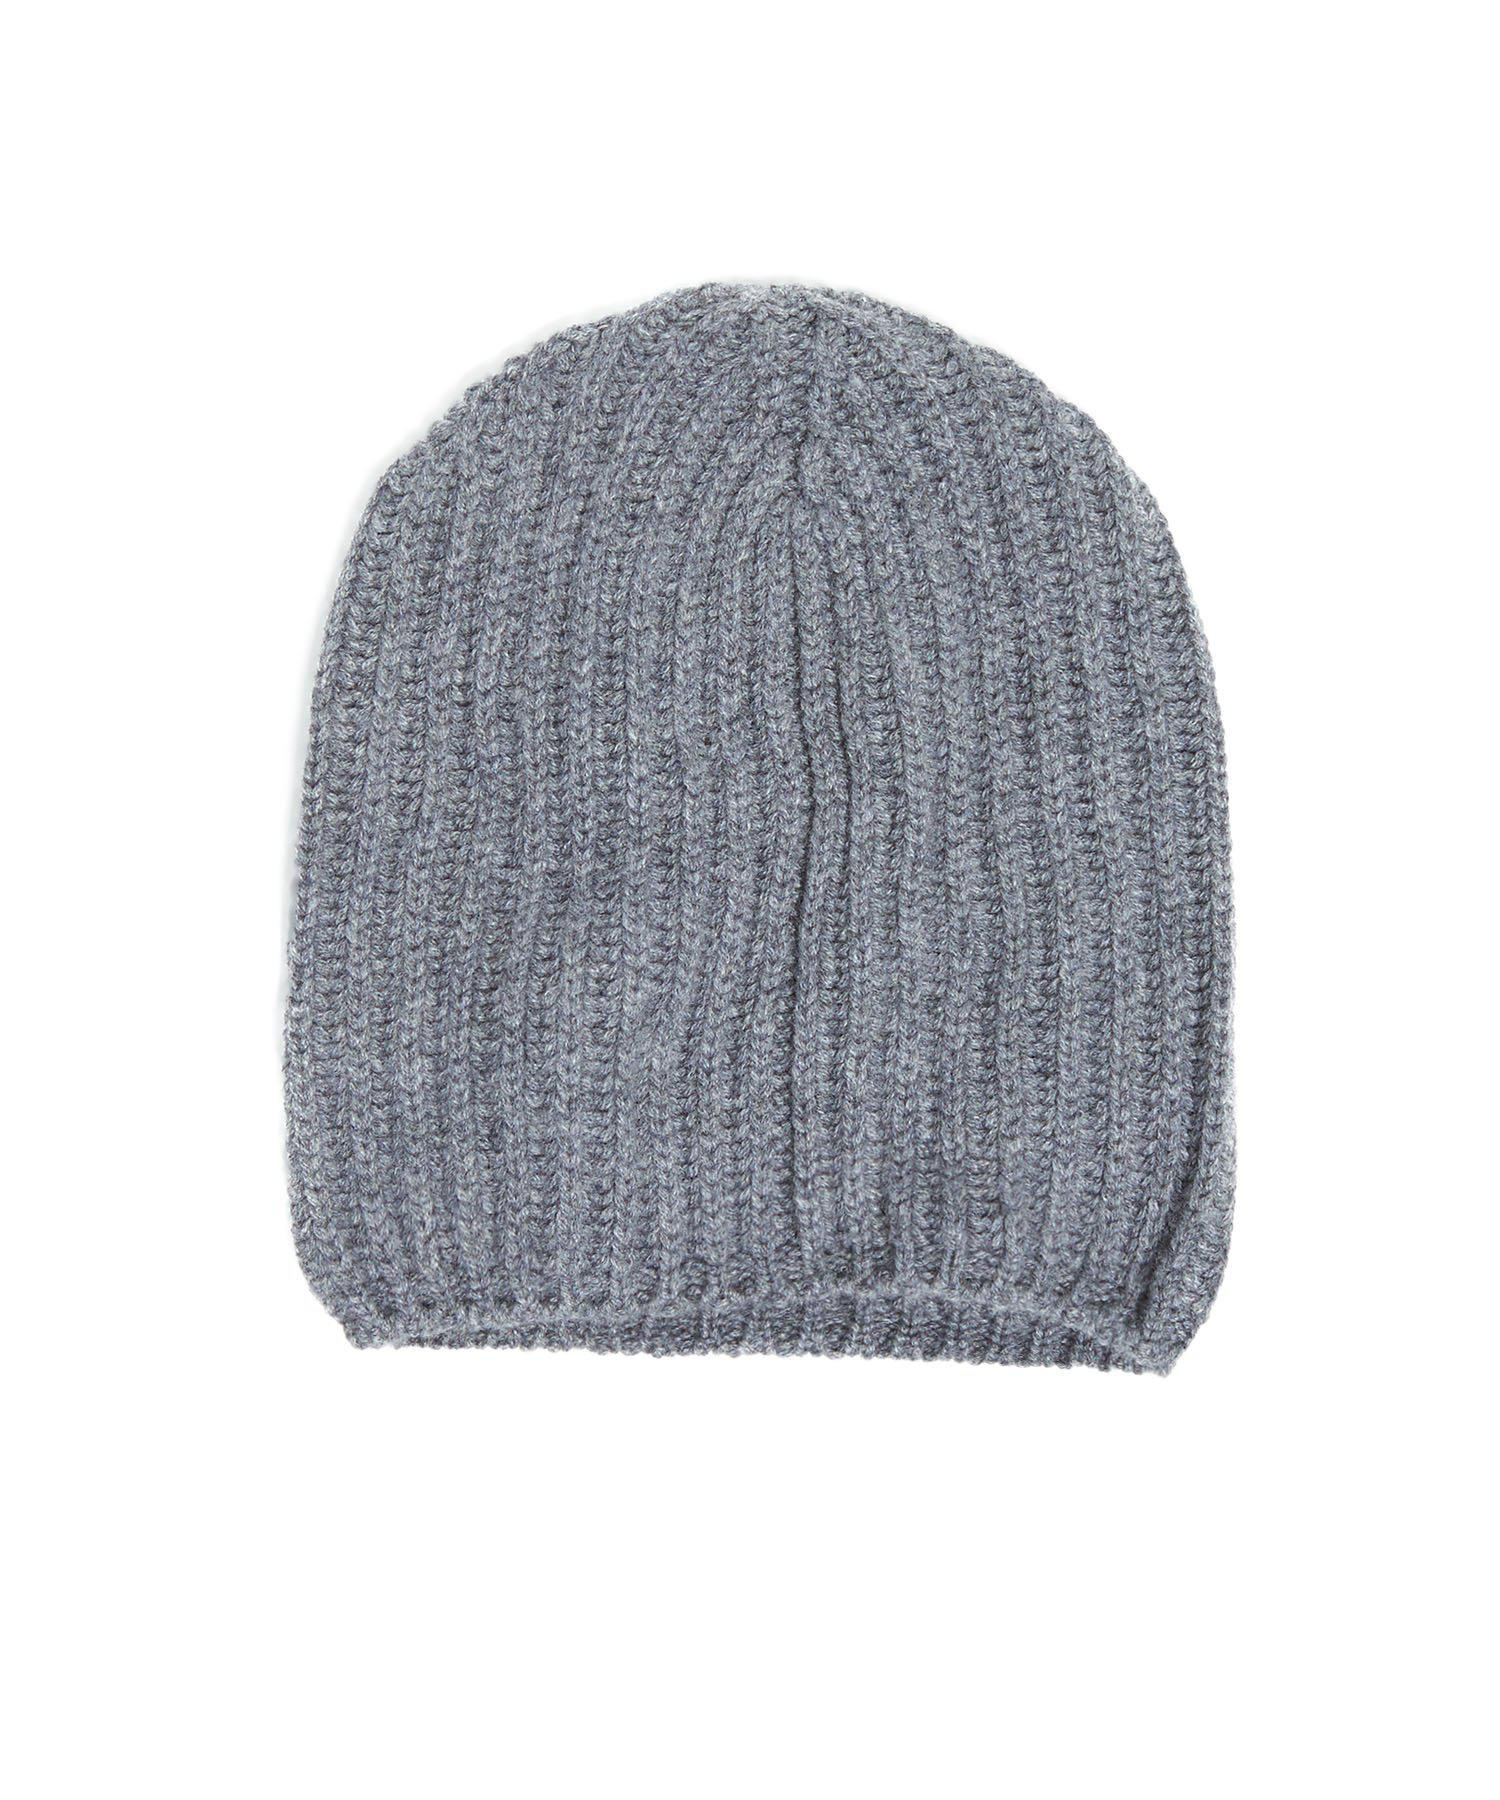 a32226ce2e8 Lyst - Drake s Cashmere Ribbed Hat In Grey in Gray for Men